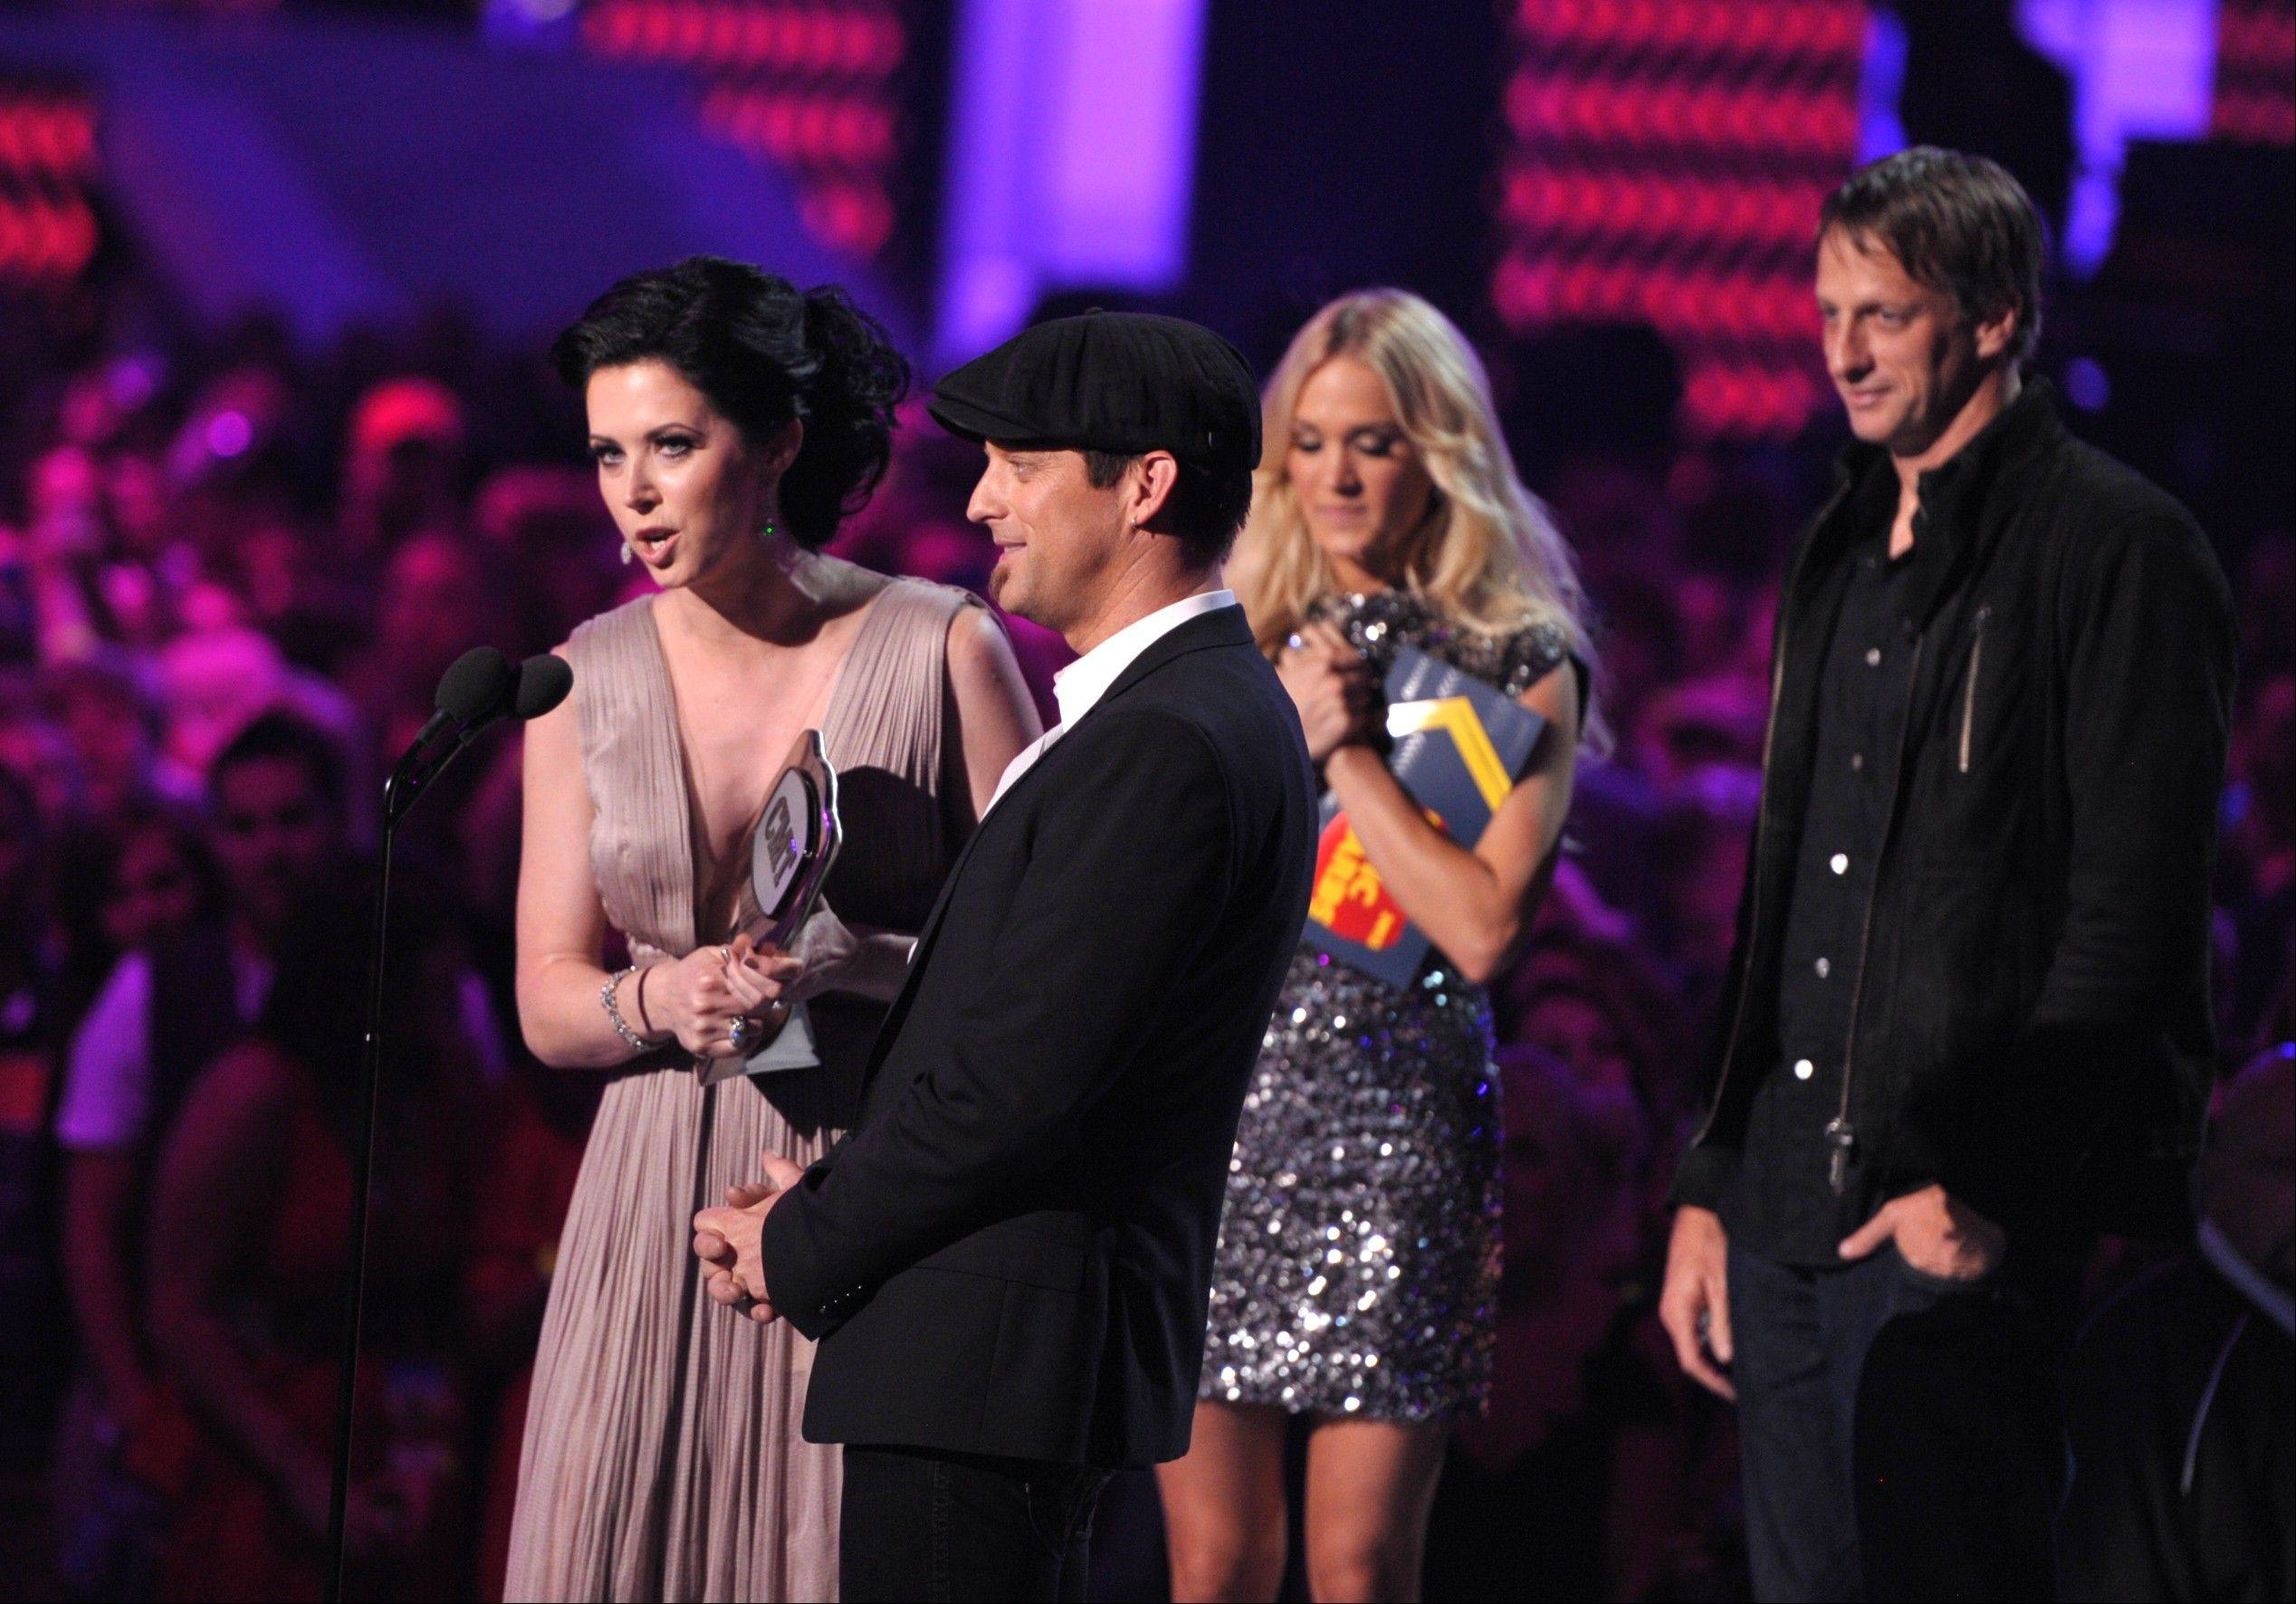 Shawna Thompson, left, and Keifer Thompson of Thompson Square accept the award for Duo Video Of The Year at the 2012 CMT Music Awards on Wednesday, June 6, 2012 in Nashville, Tenn.